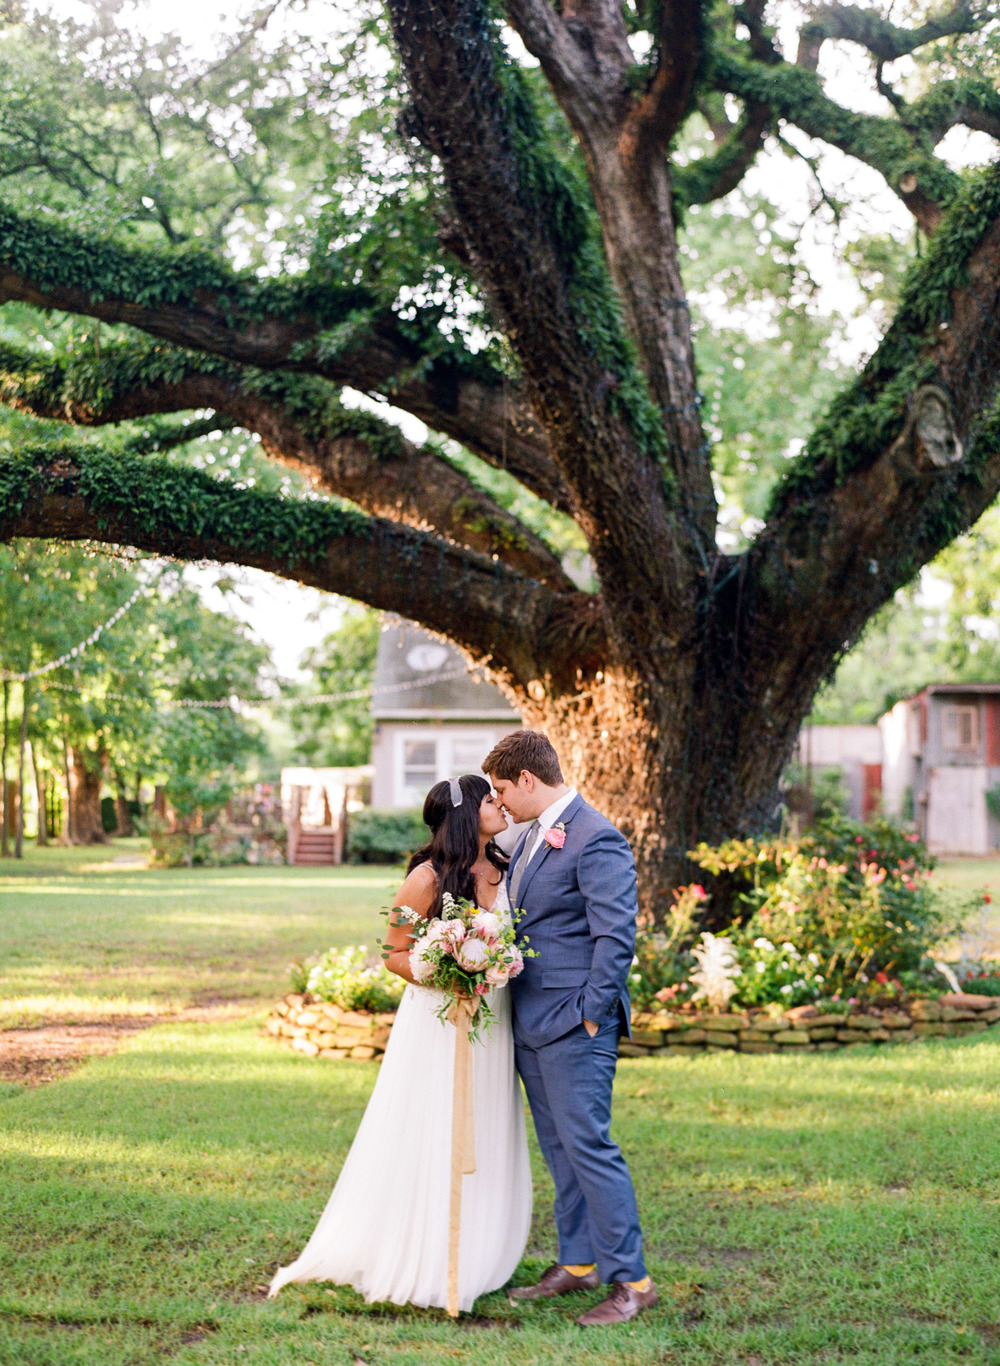 Houston Wedding Photographer Dana Fernandez Photography Oak Tree Manor Film Bridals Destination Boho-2.jpg